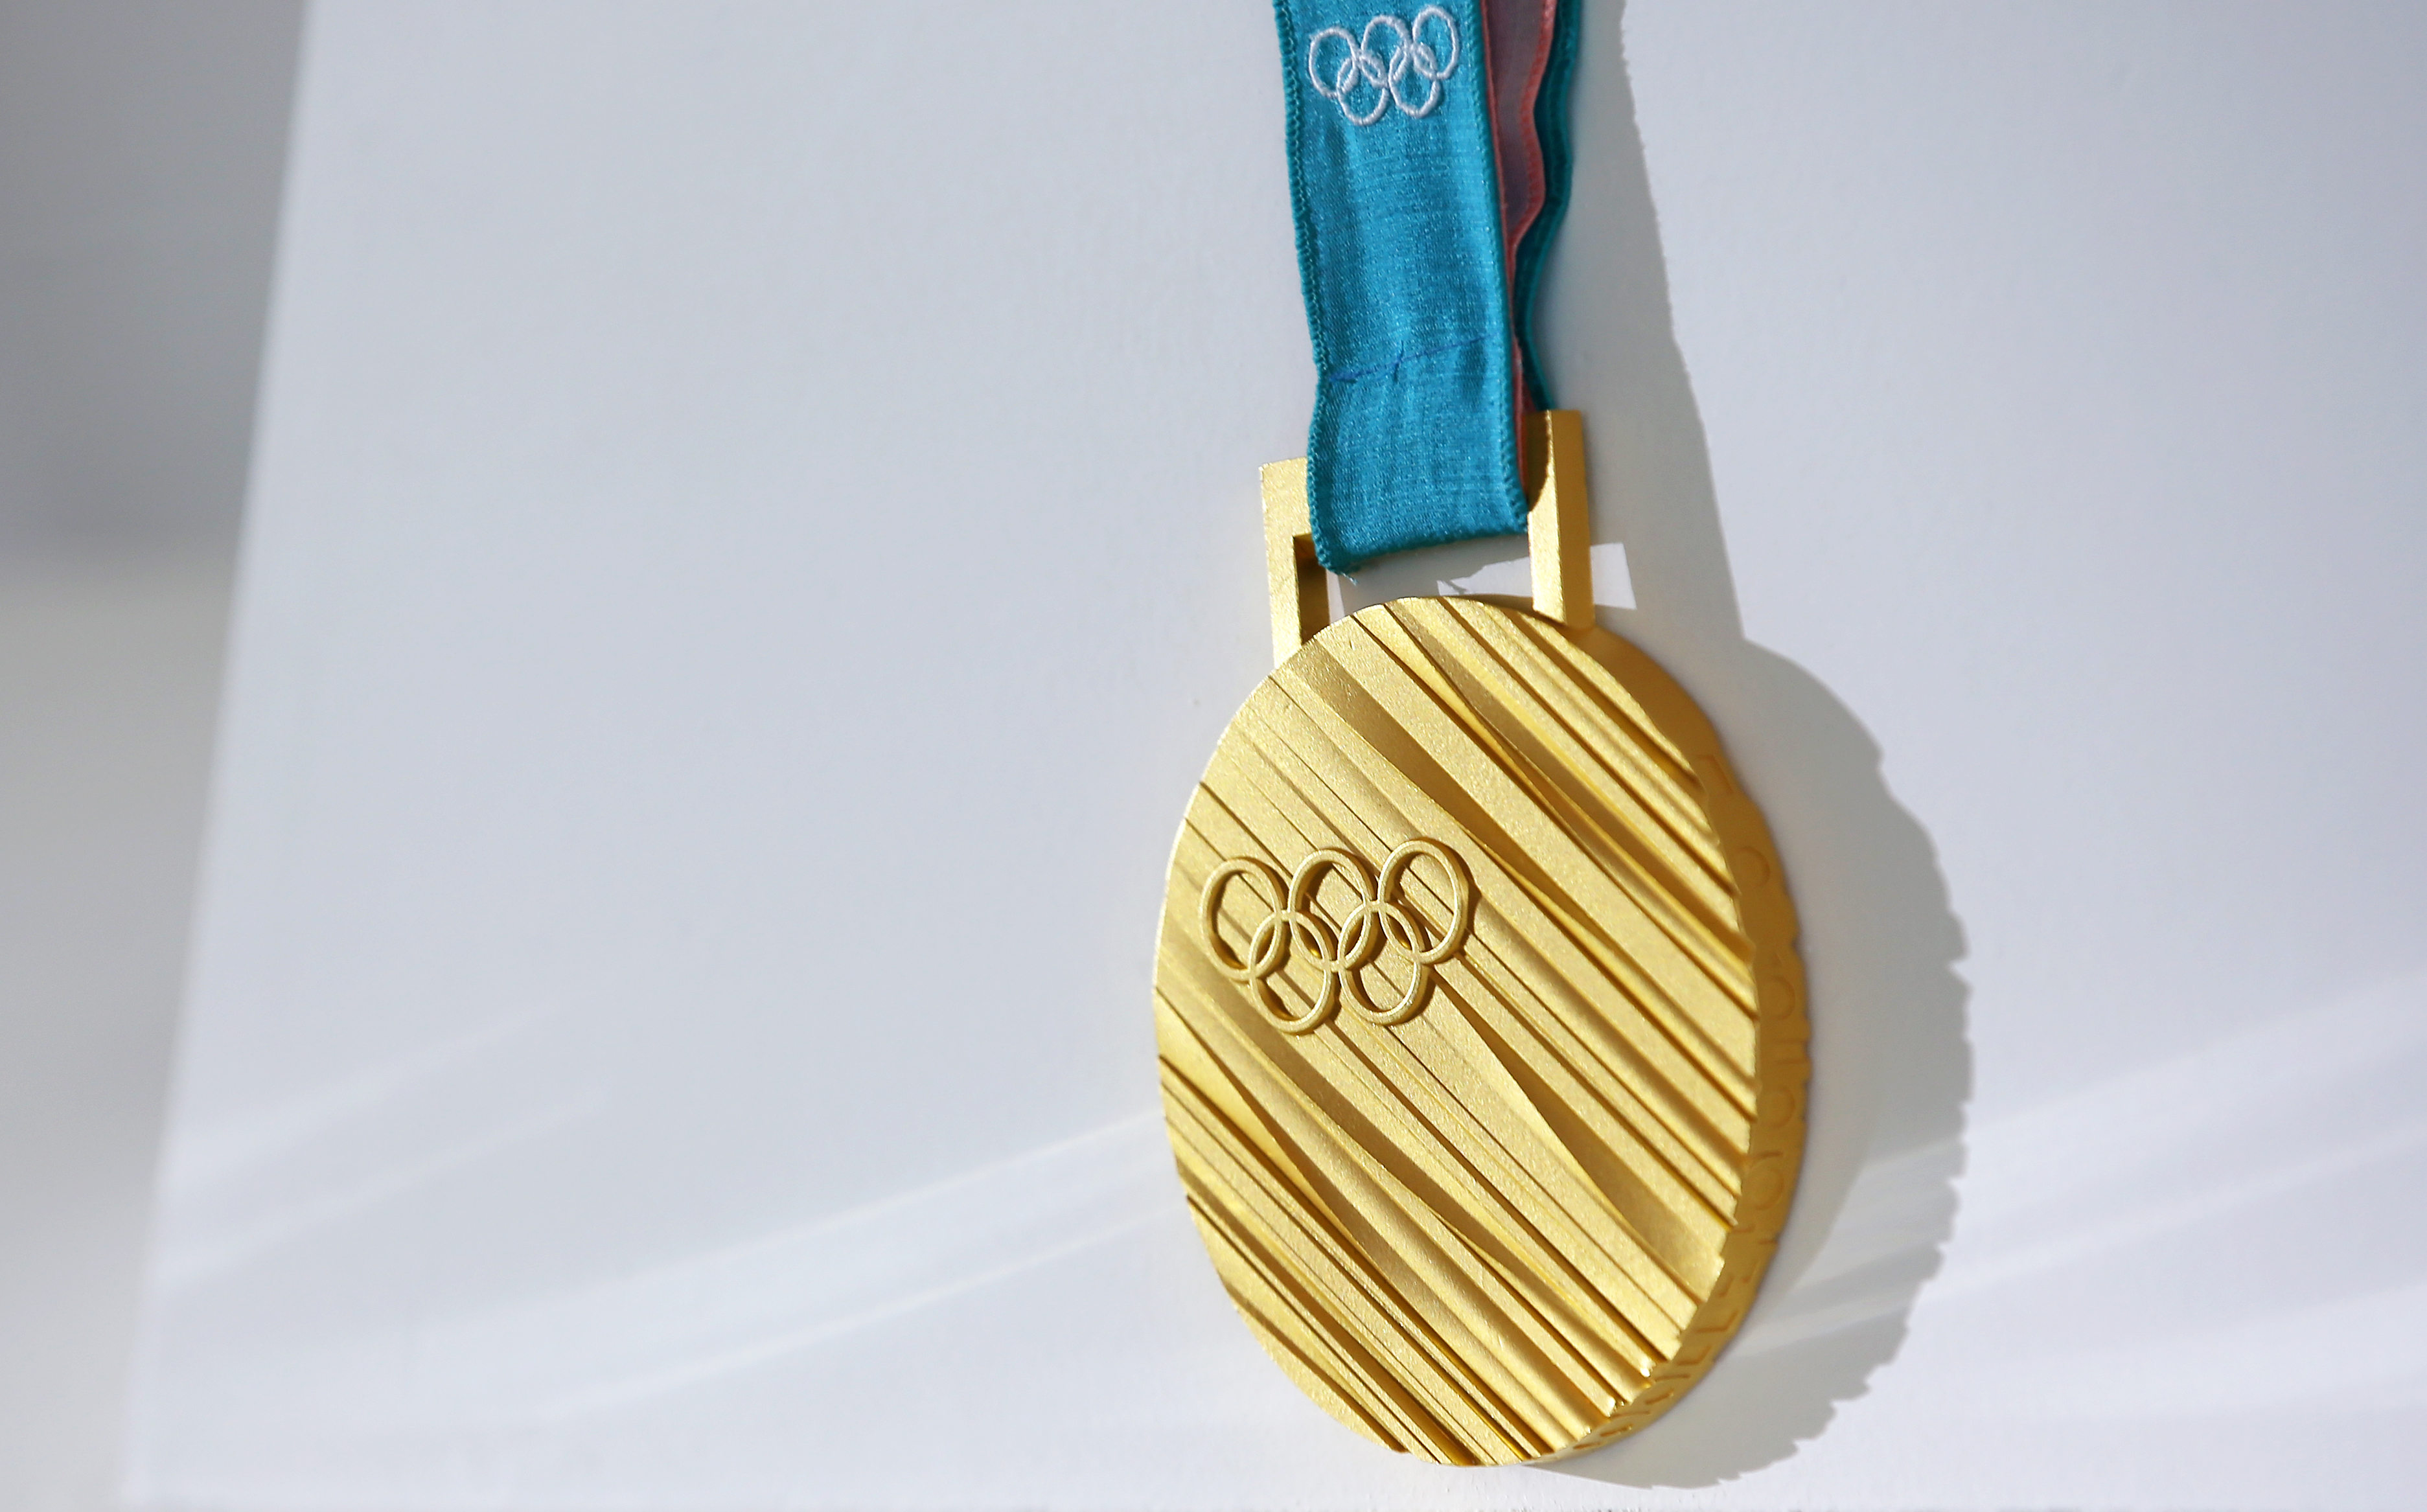 How much gold is in an Olympic gold medal? | Provident